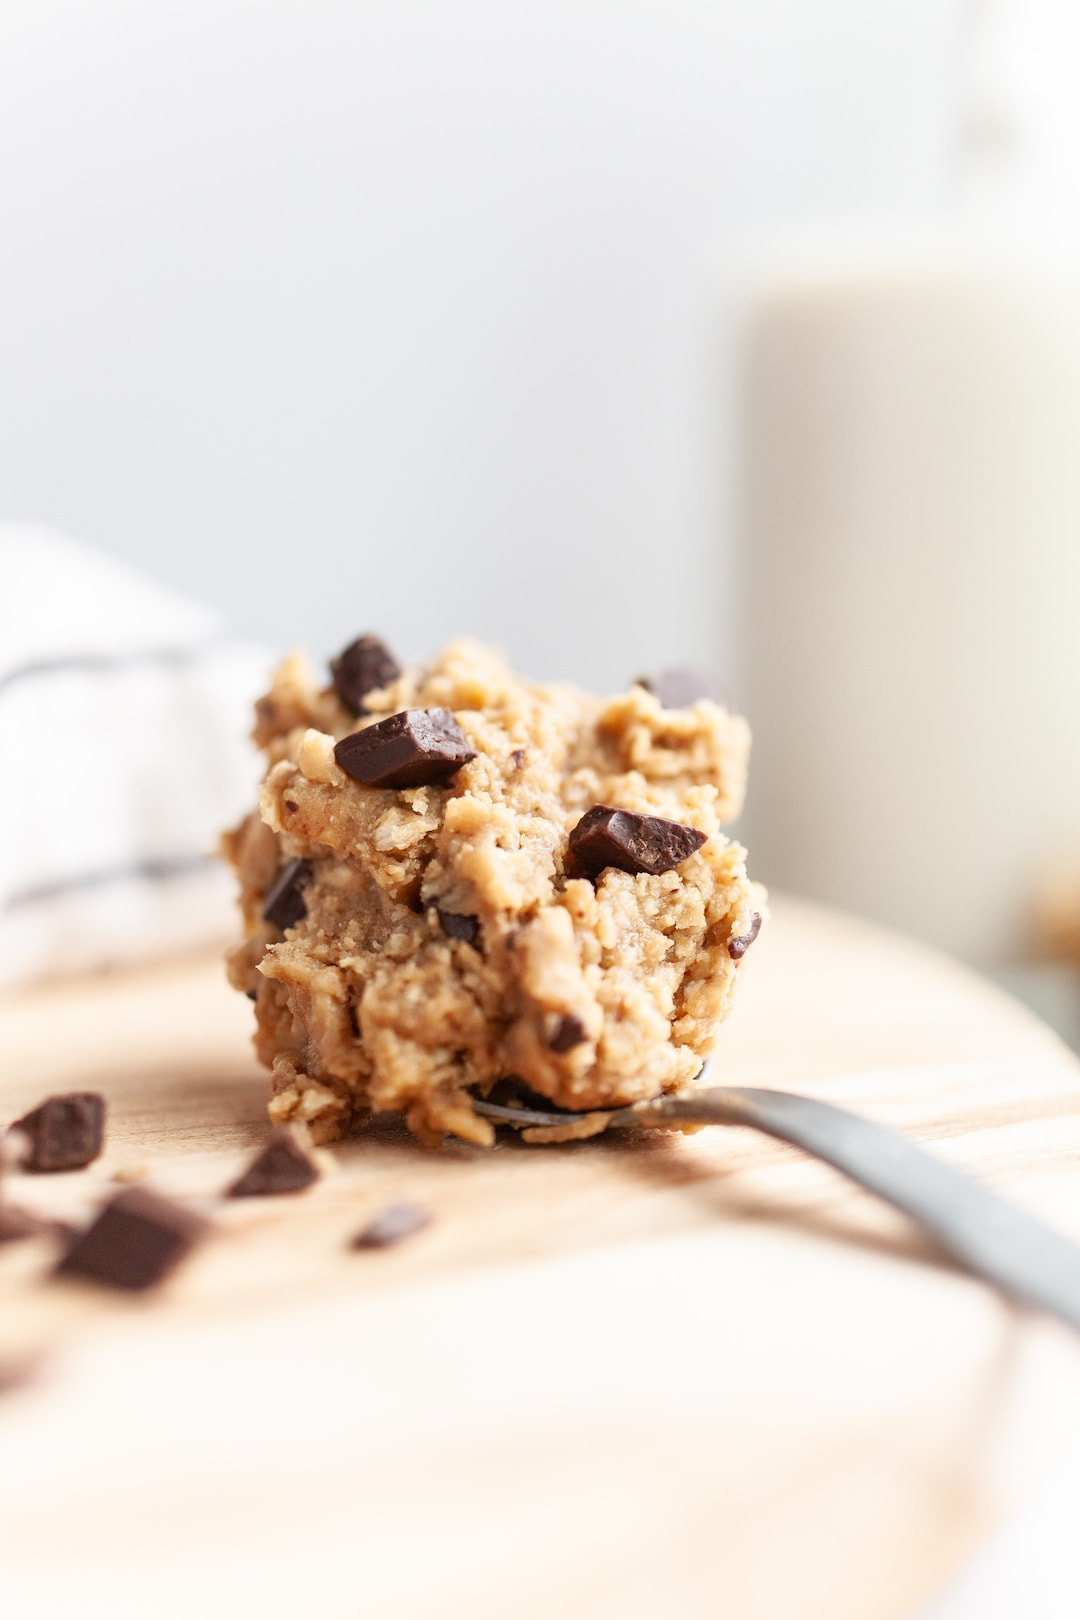 spoon of protein cookie dough with dark chocolate chunks on a wood board